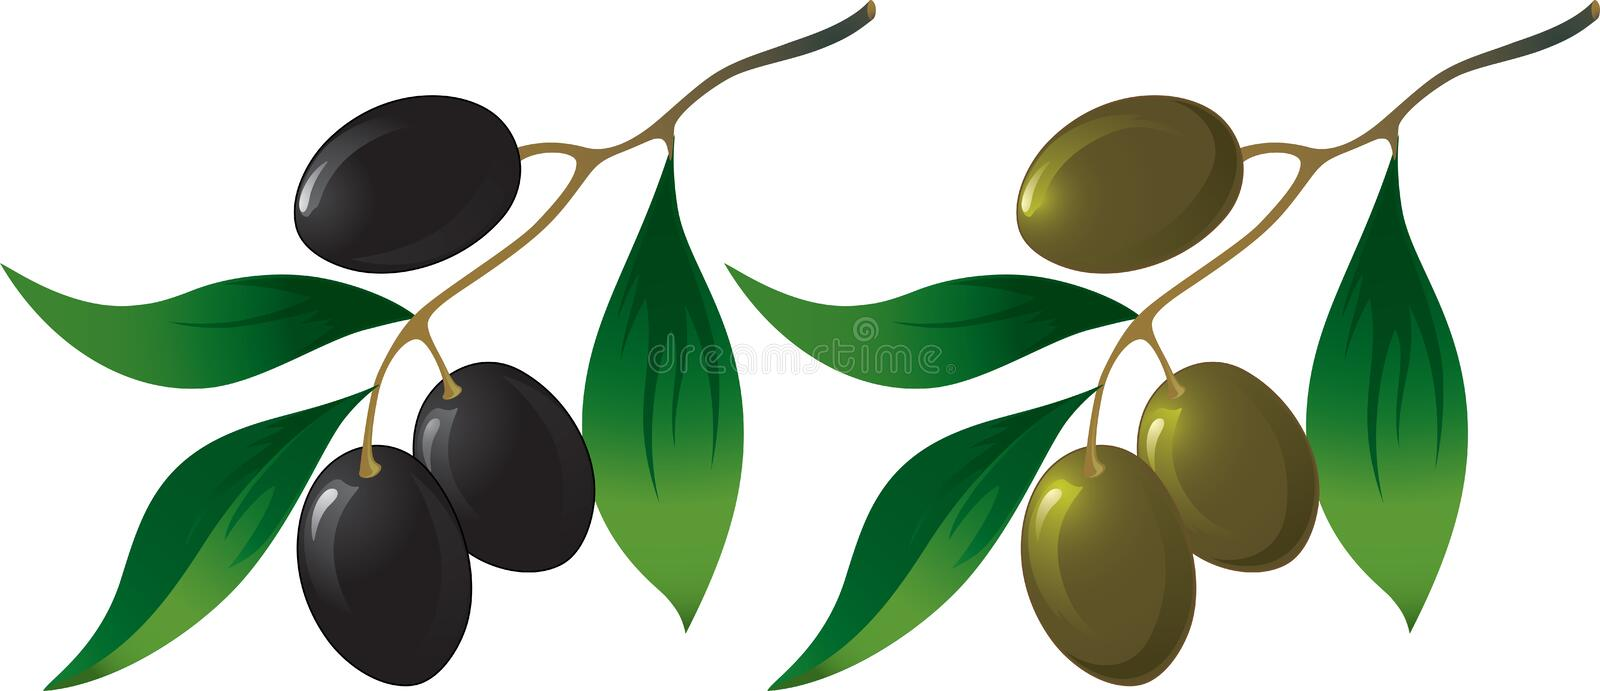 olive de branchement illustration de vecteur